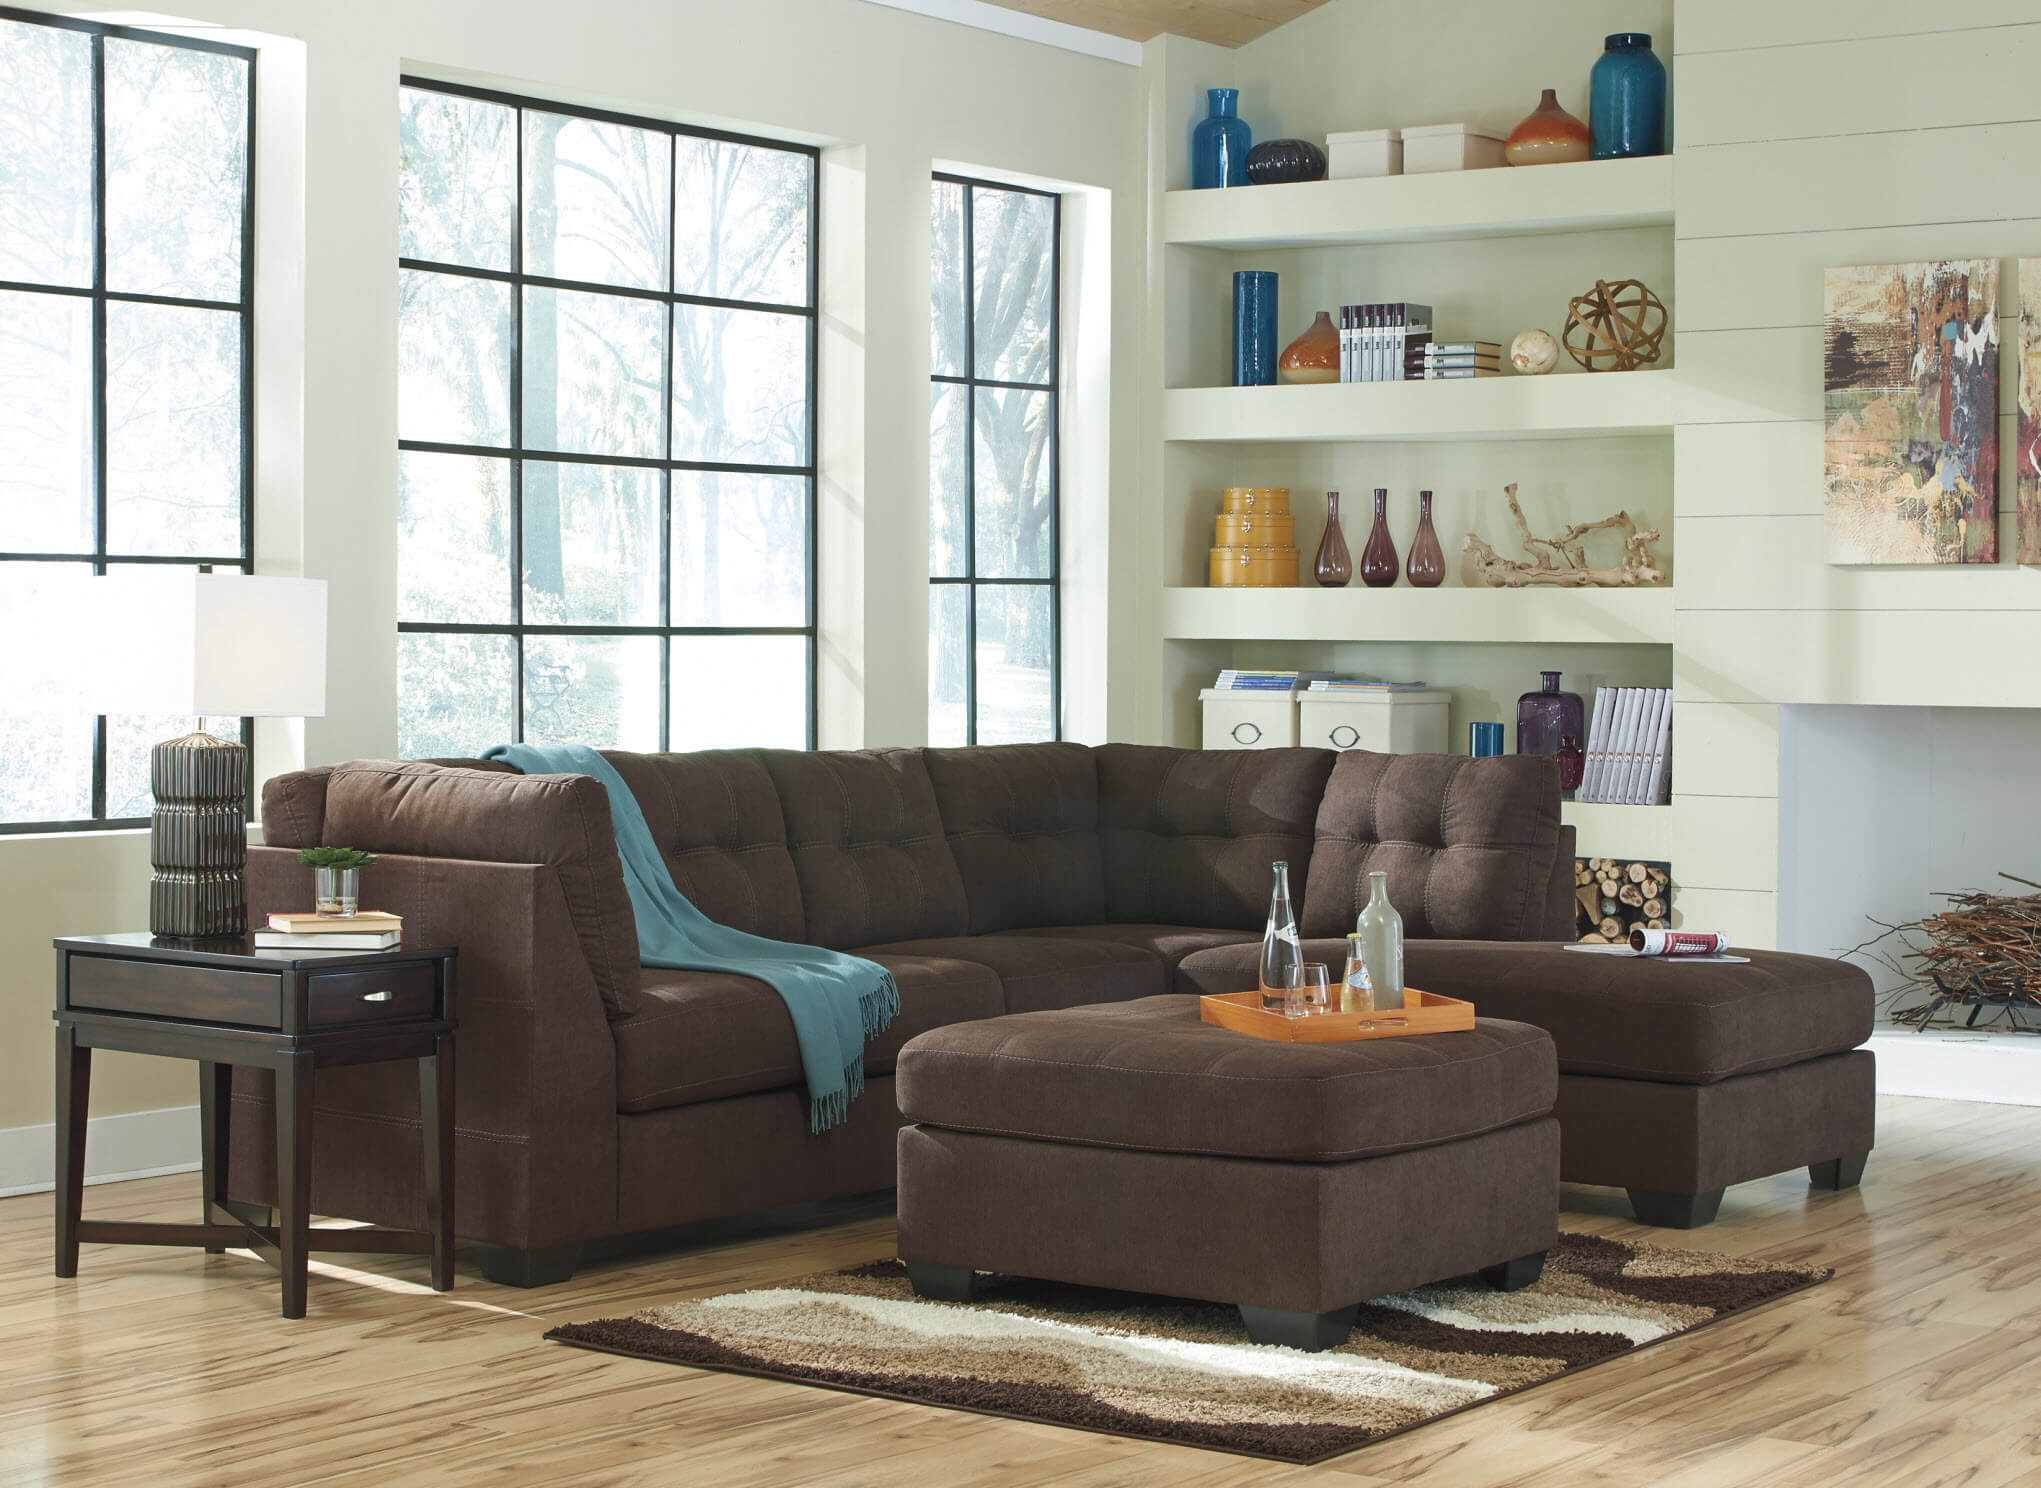 Living Room Set Ashley Furniture 999